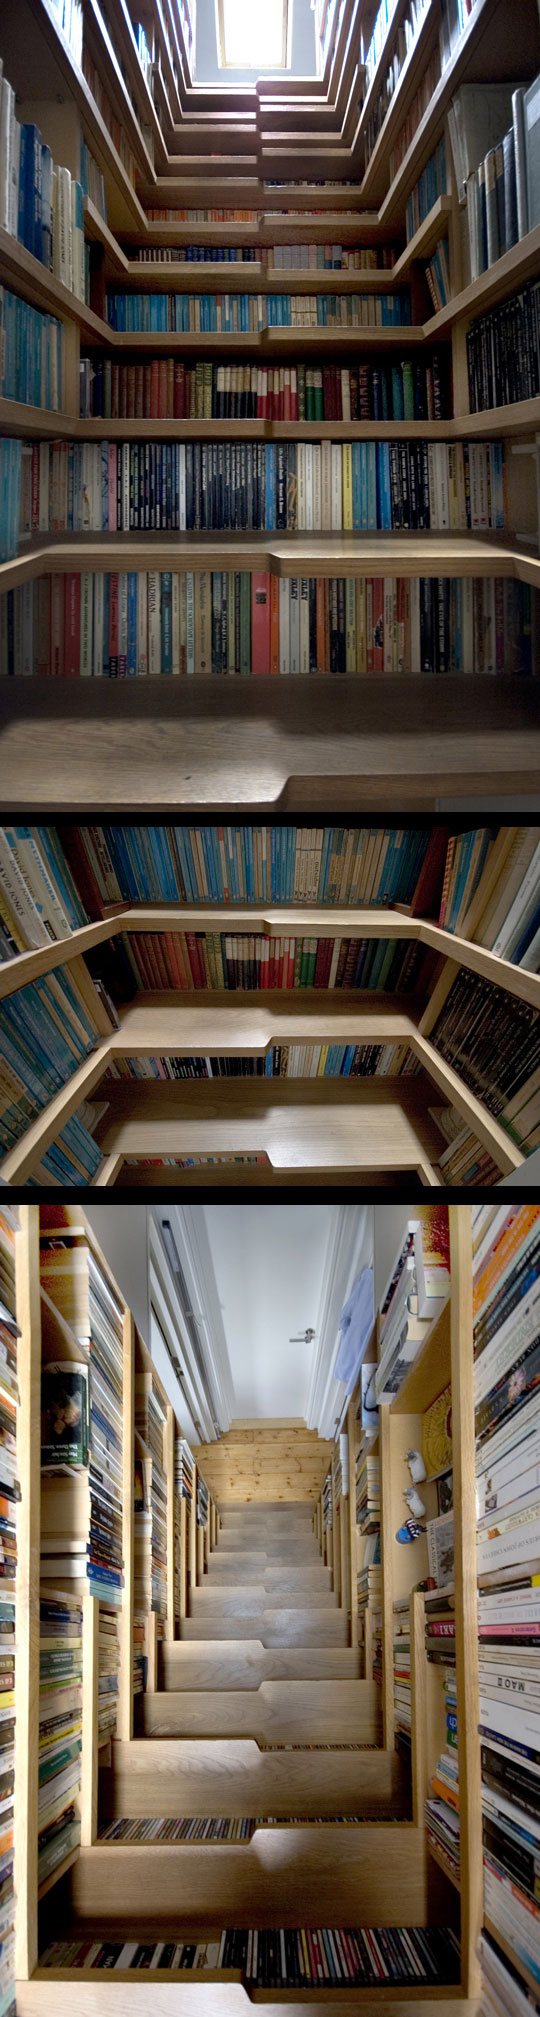 Full-room bookshelf with integral staircase